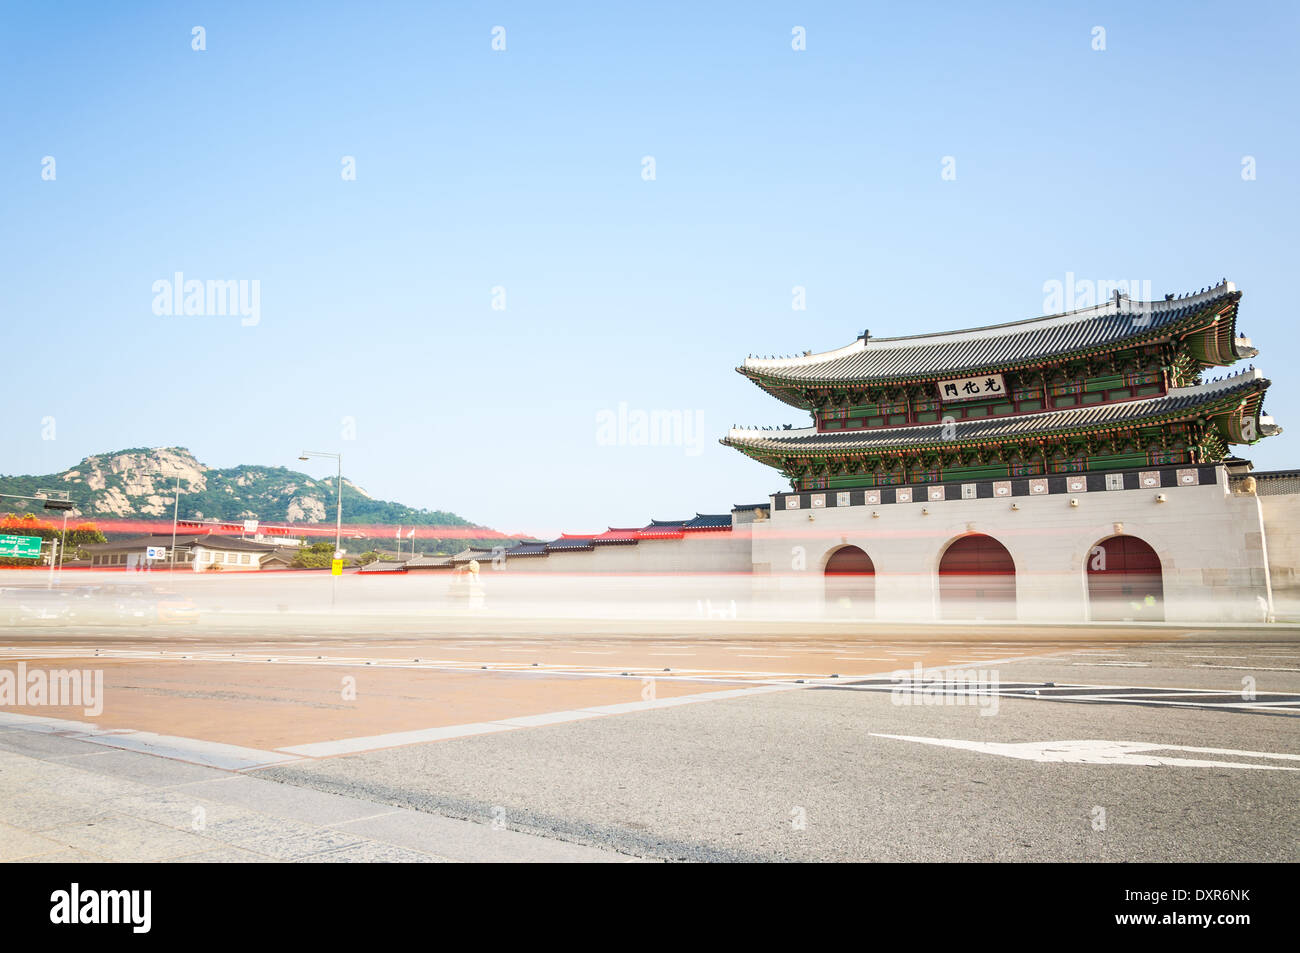 Traditional Korean architecture at Gyeongbokgung Palace in Seoul, South Korea. - Stock Image